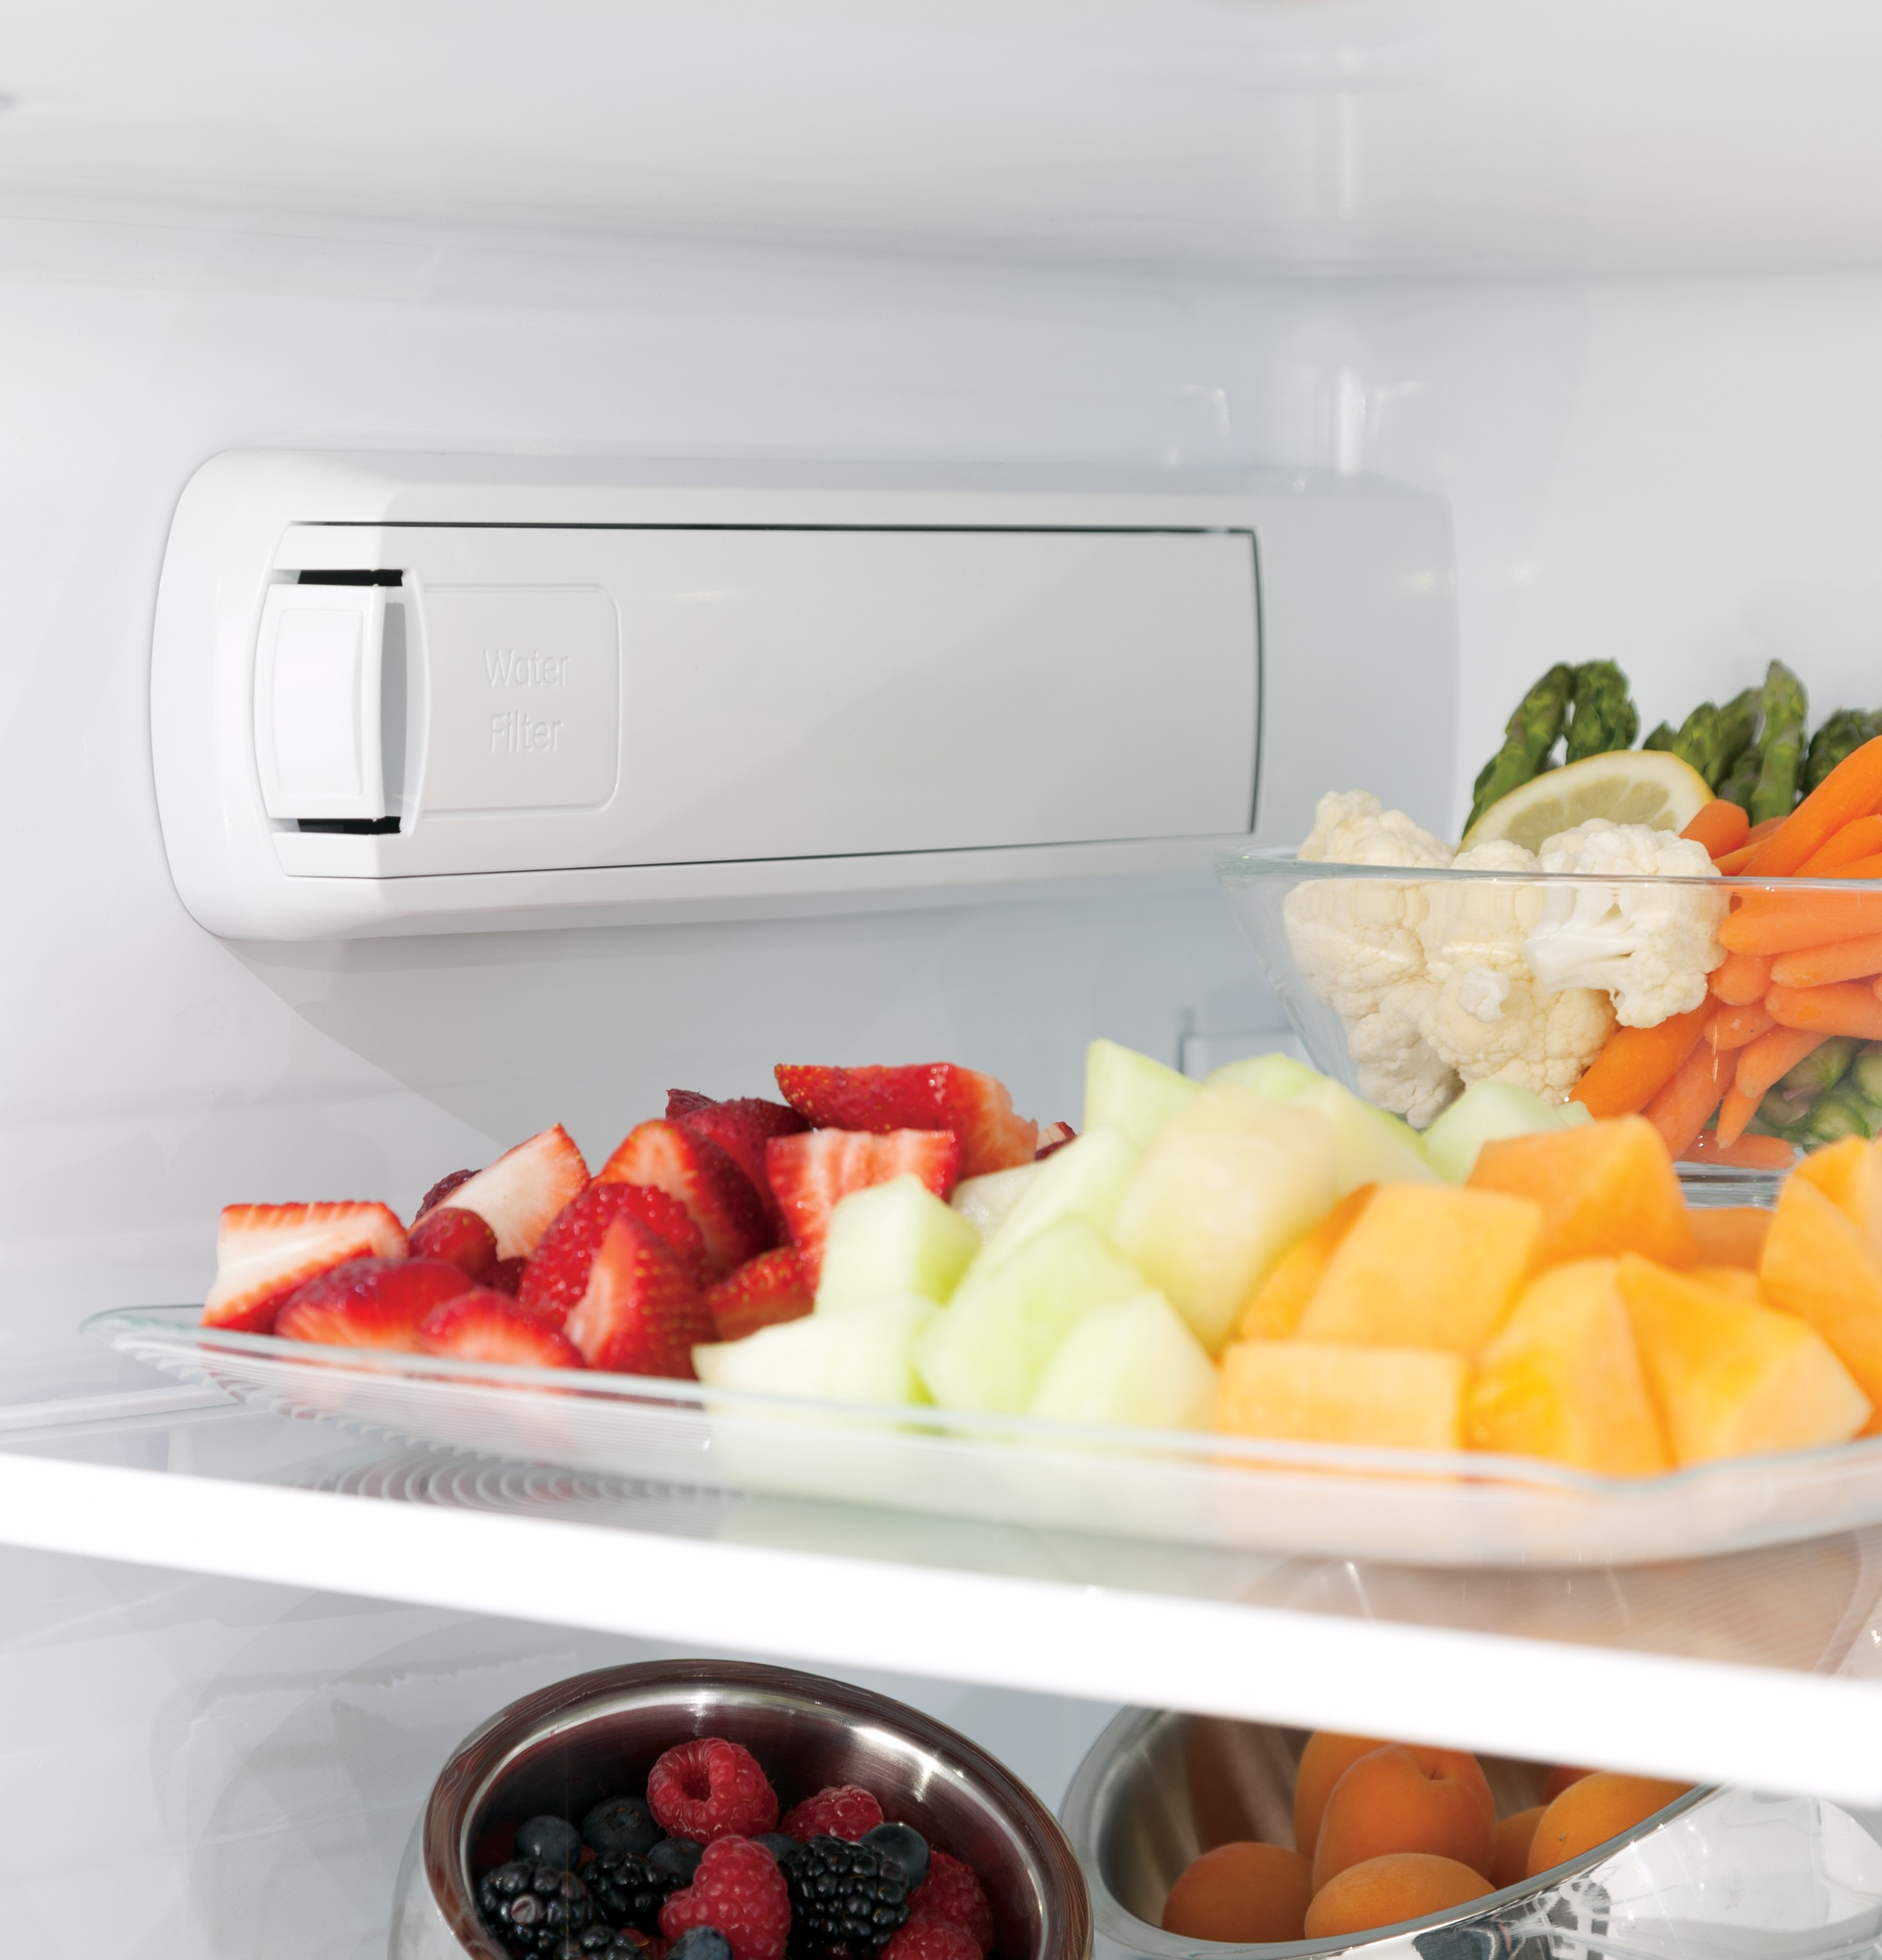 Model: PFE28PSKSS   GE Profile™ Series ENERGY STAR® 27.8 Cu. Ft. French-Door Refrigerator with Keurig® K-Cup® Brewing System